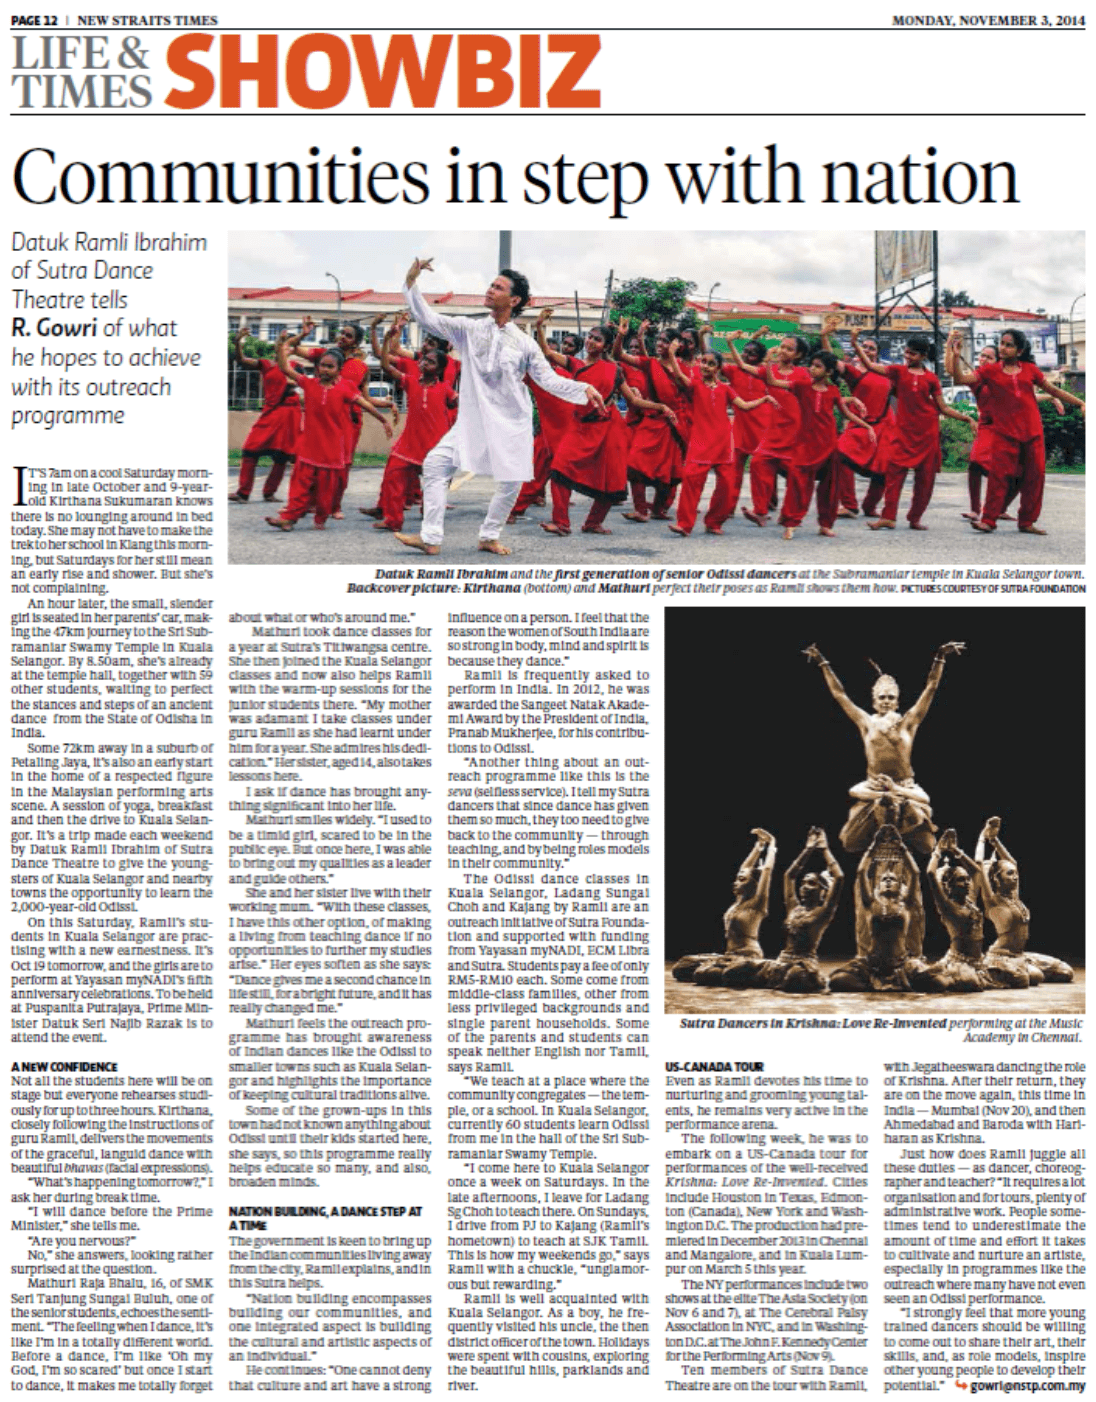 Communities in step with nation